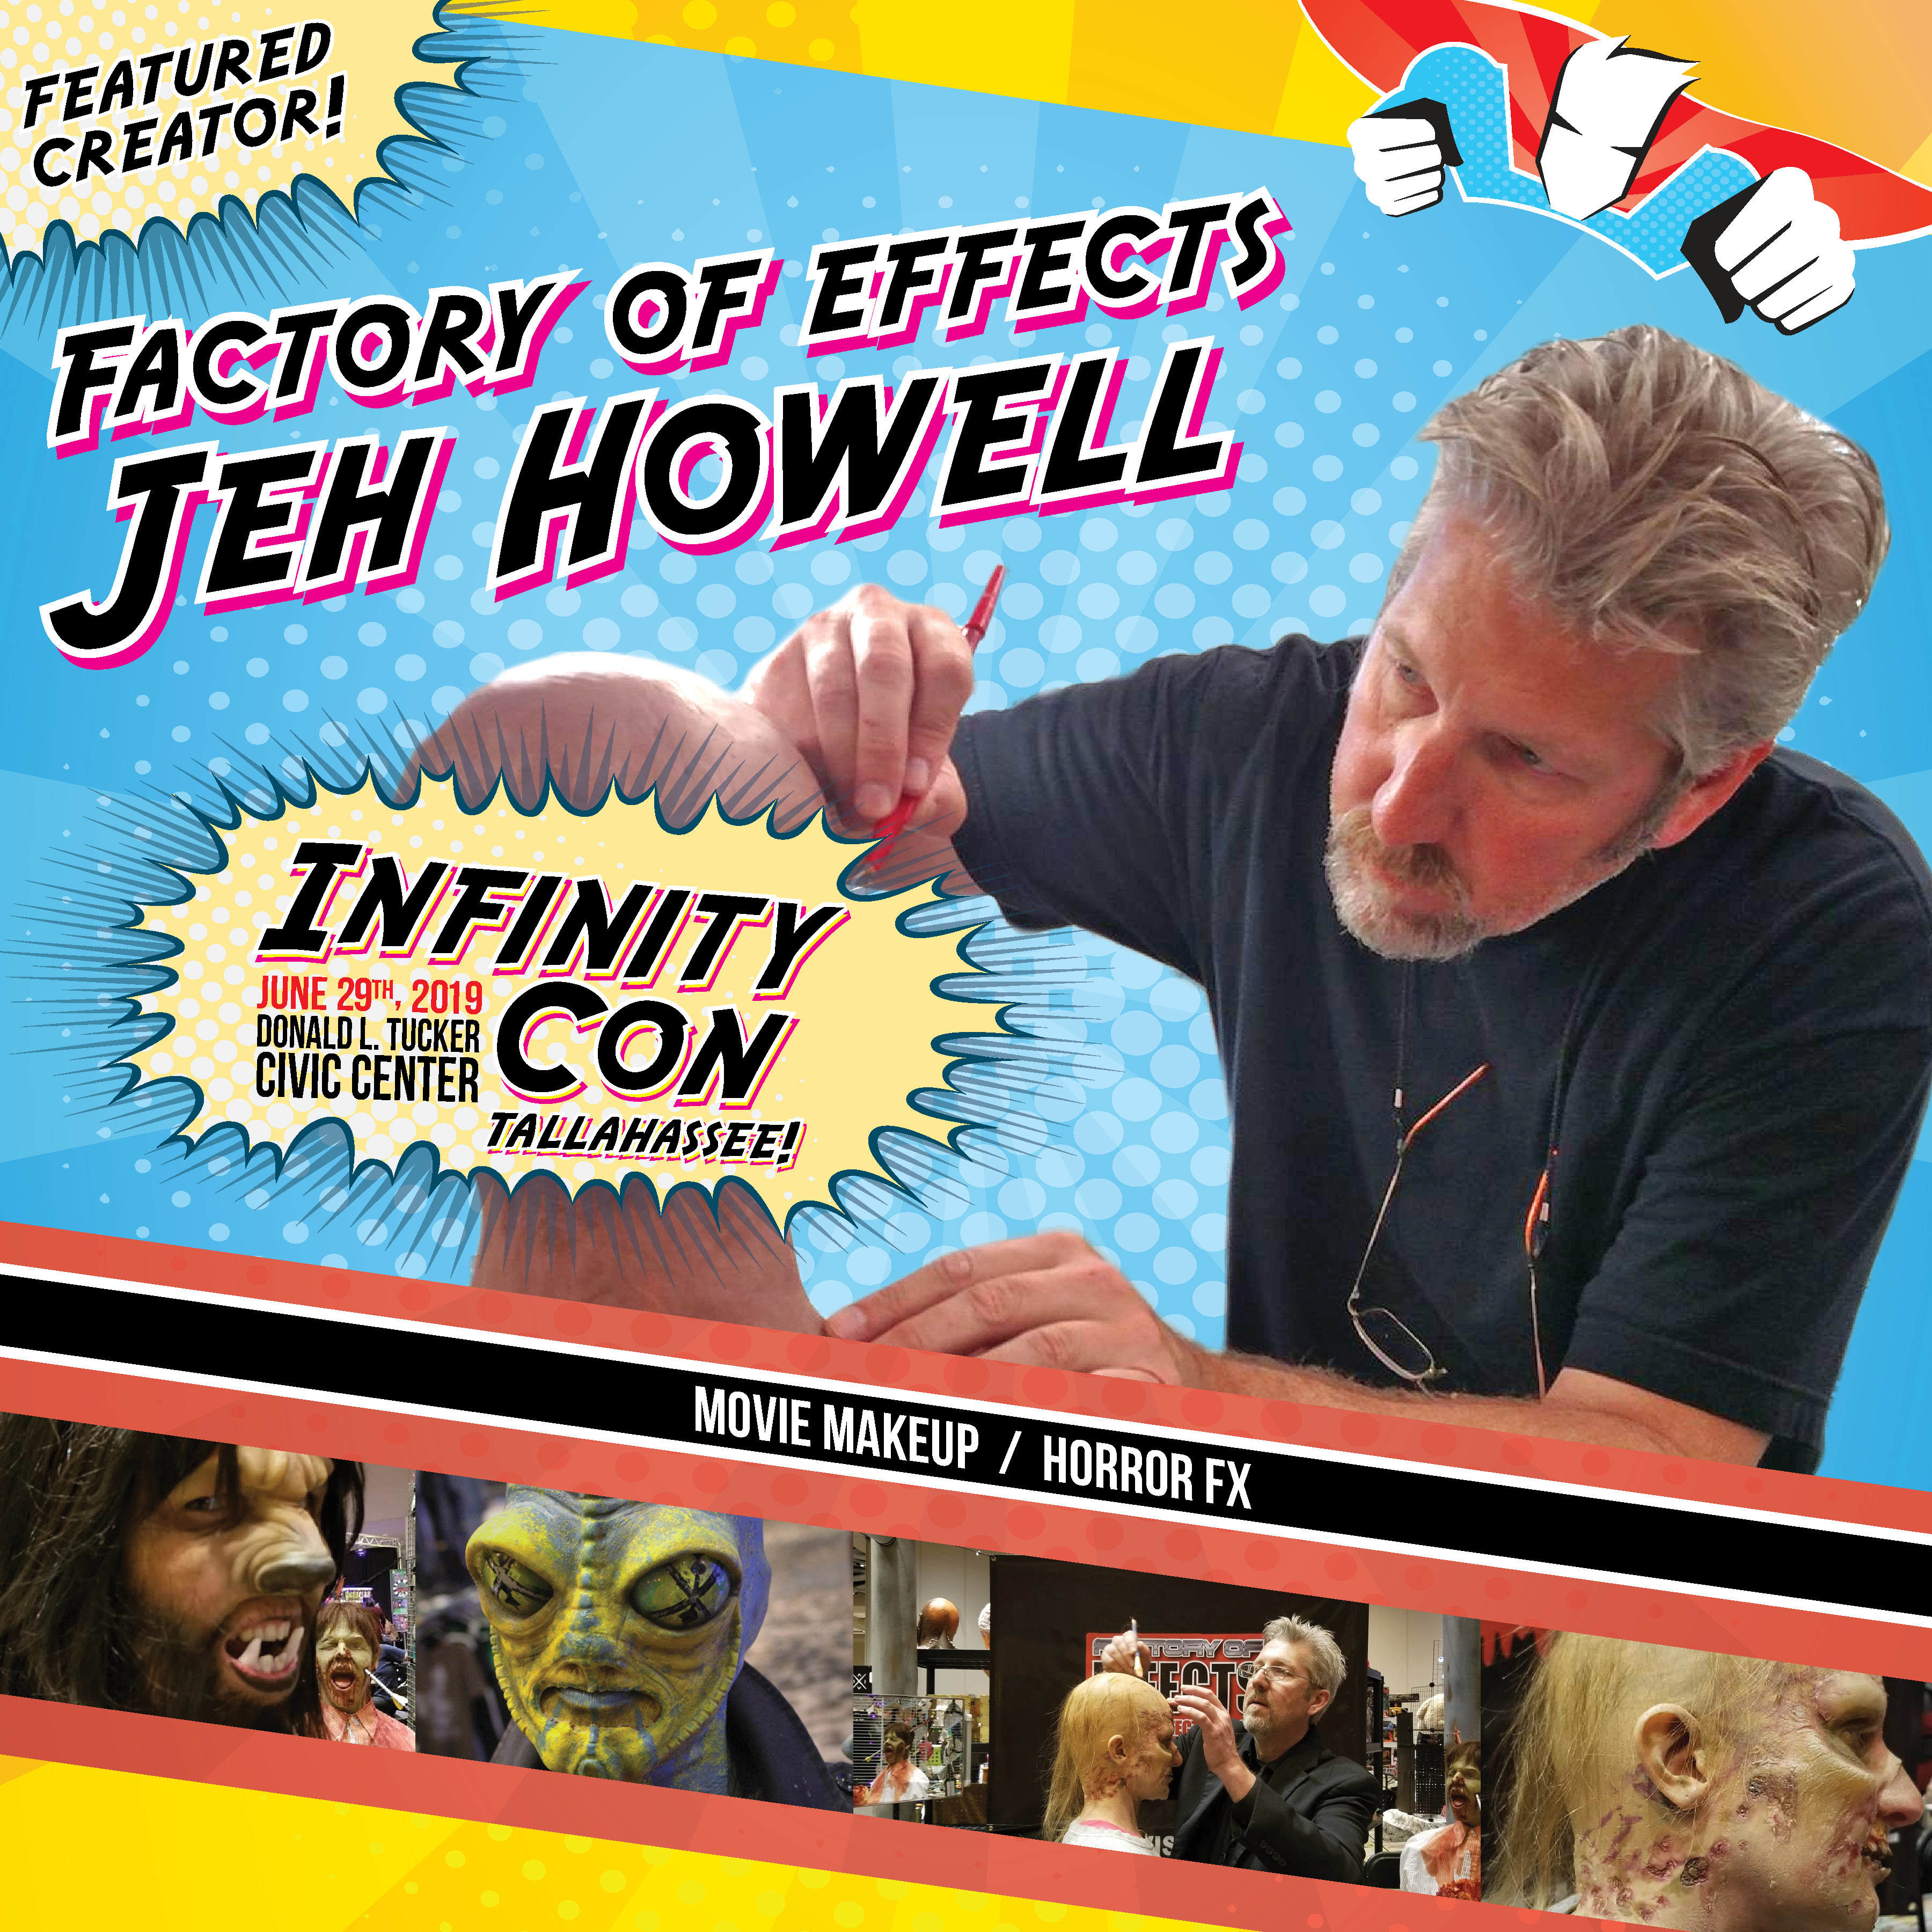 Jeh Howell